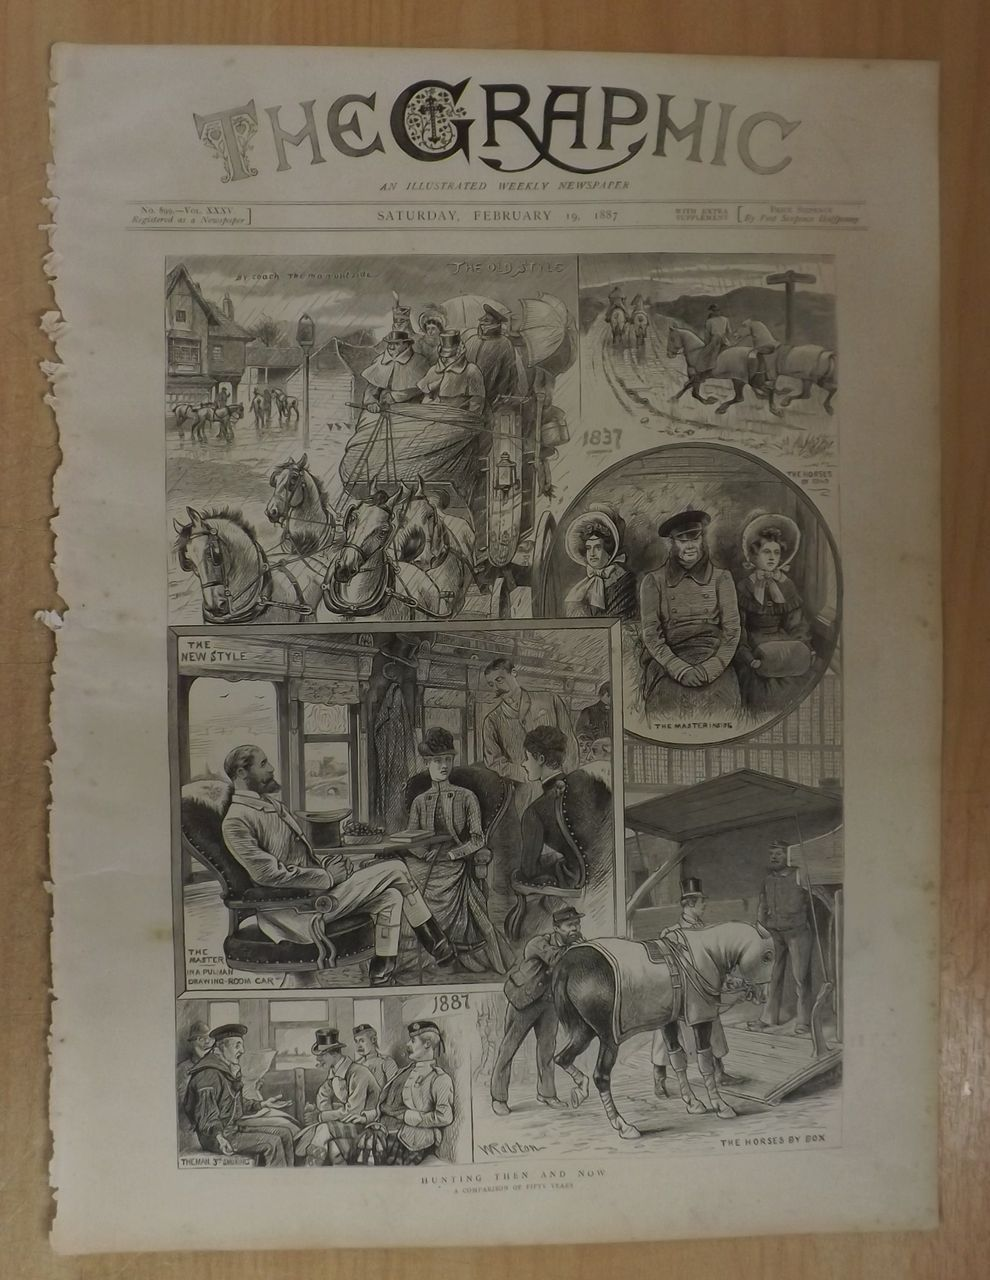 Hunting Then And Now - Full Page The Graphic 1887